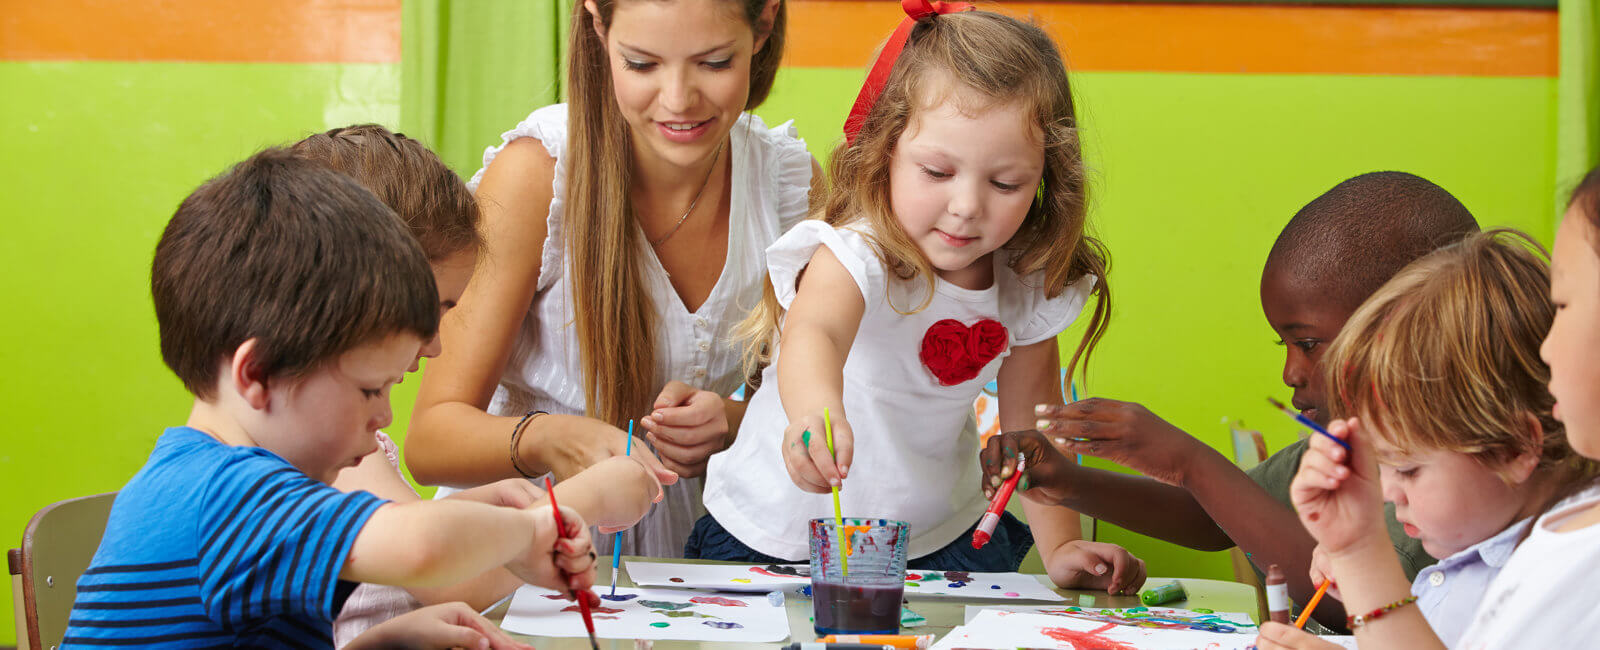 EYFS online training for childminders and nannies